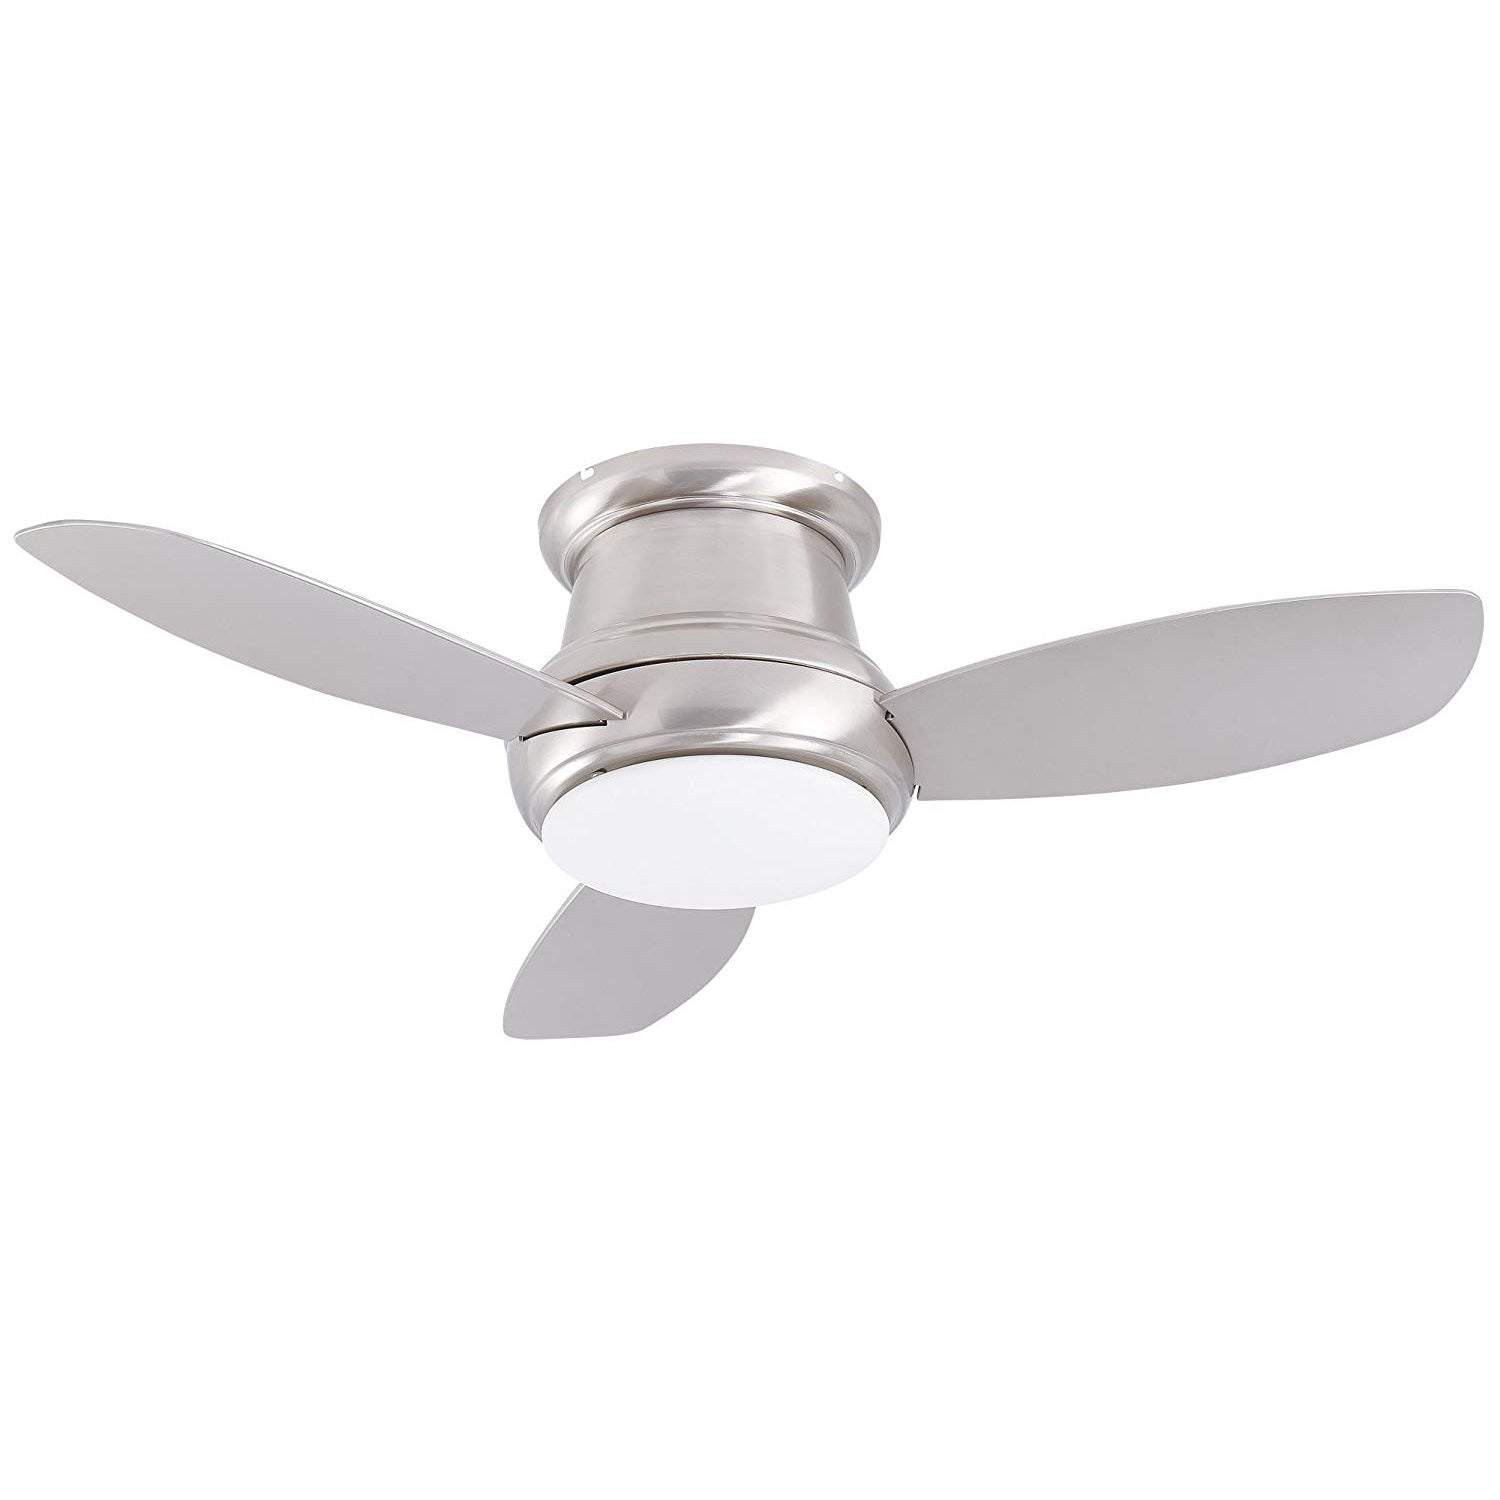 Cloudybay Ceiling Fan with LED Light 3000K 44-inch 60W Brushed Nickel with Remote Control__title